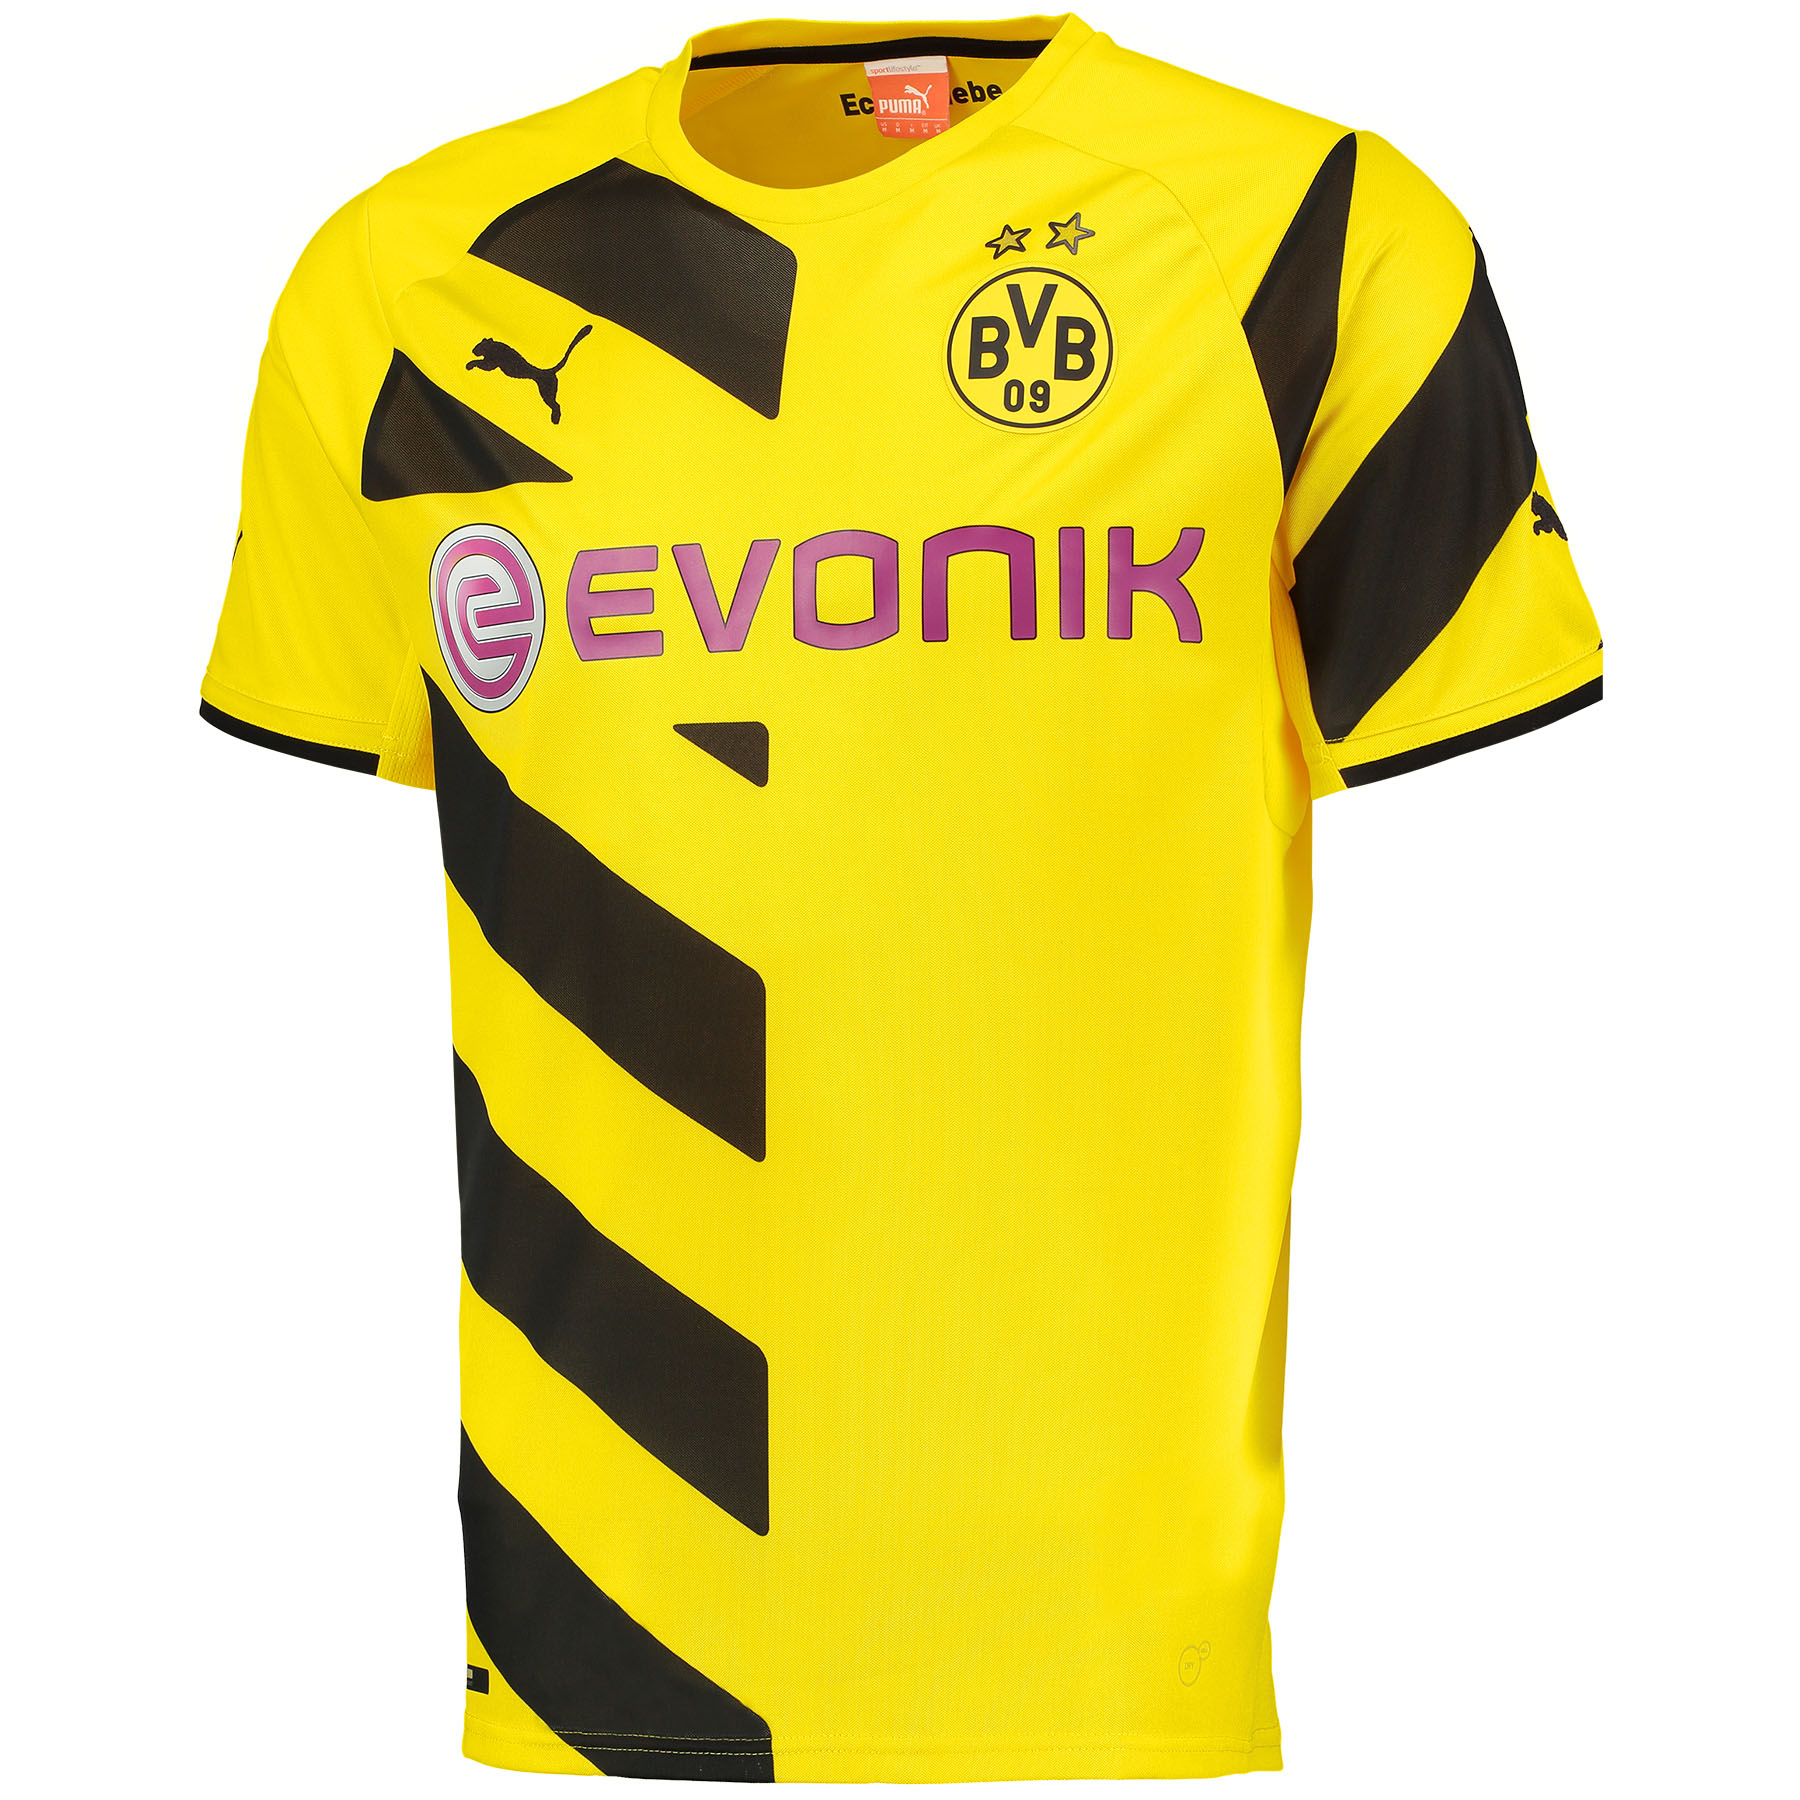 BVB Home Shirt 2014/15 Yellow